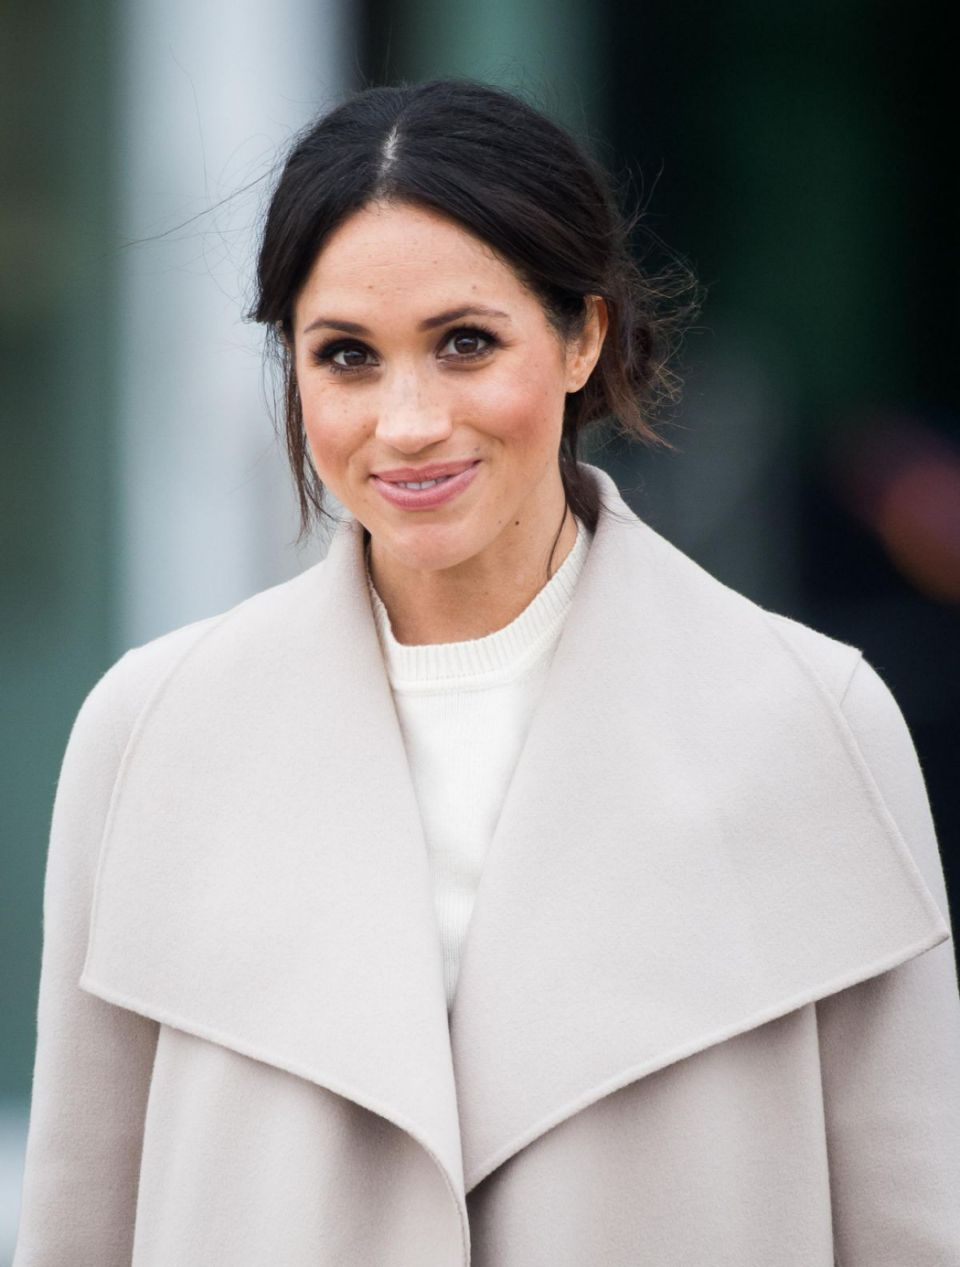 Meghan Markle's wedding bouquet will have a subtle nod to Princess Diana. Photo Getty Images